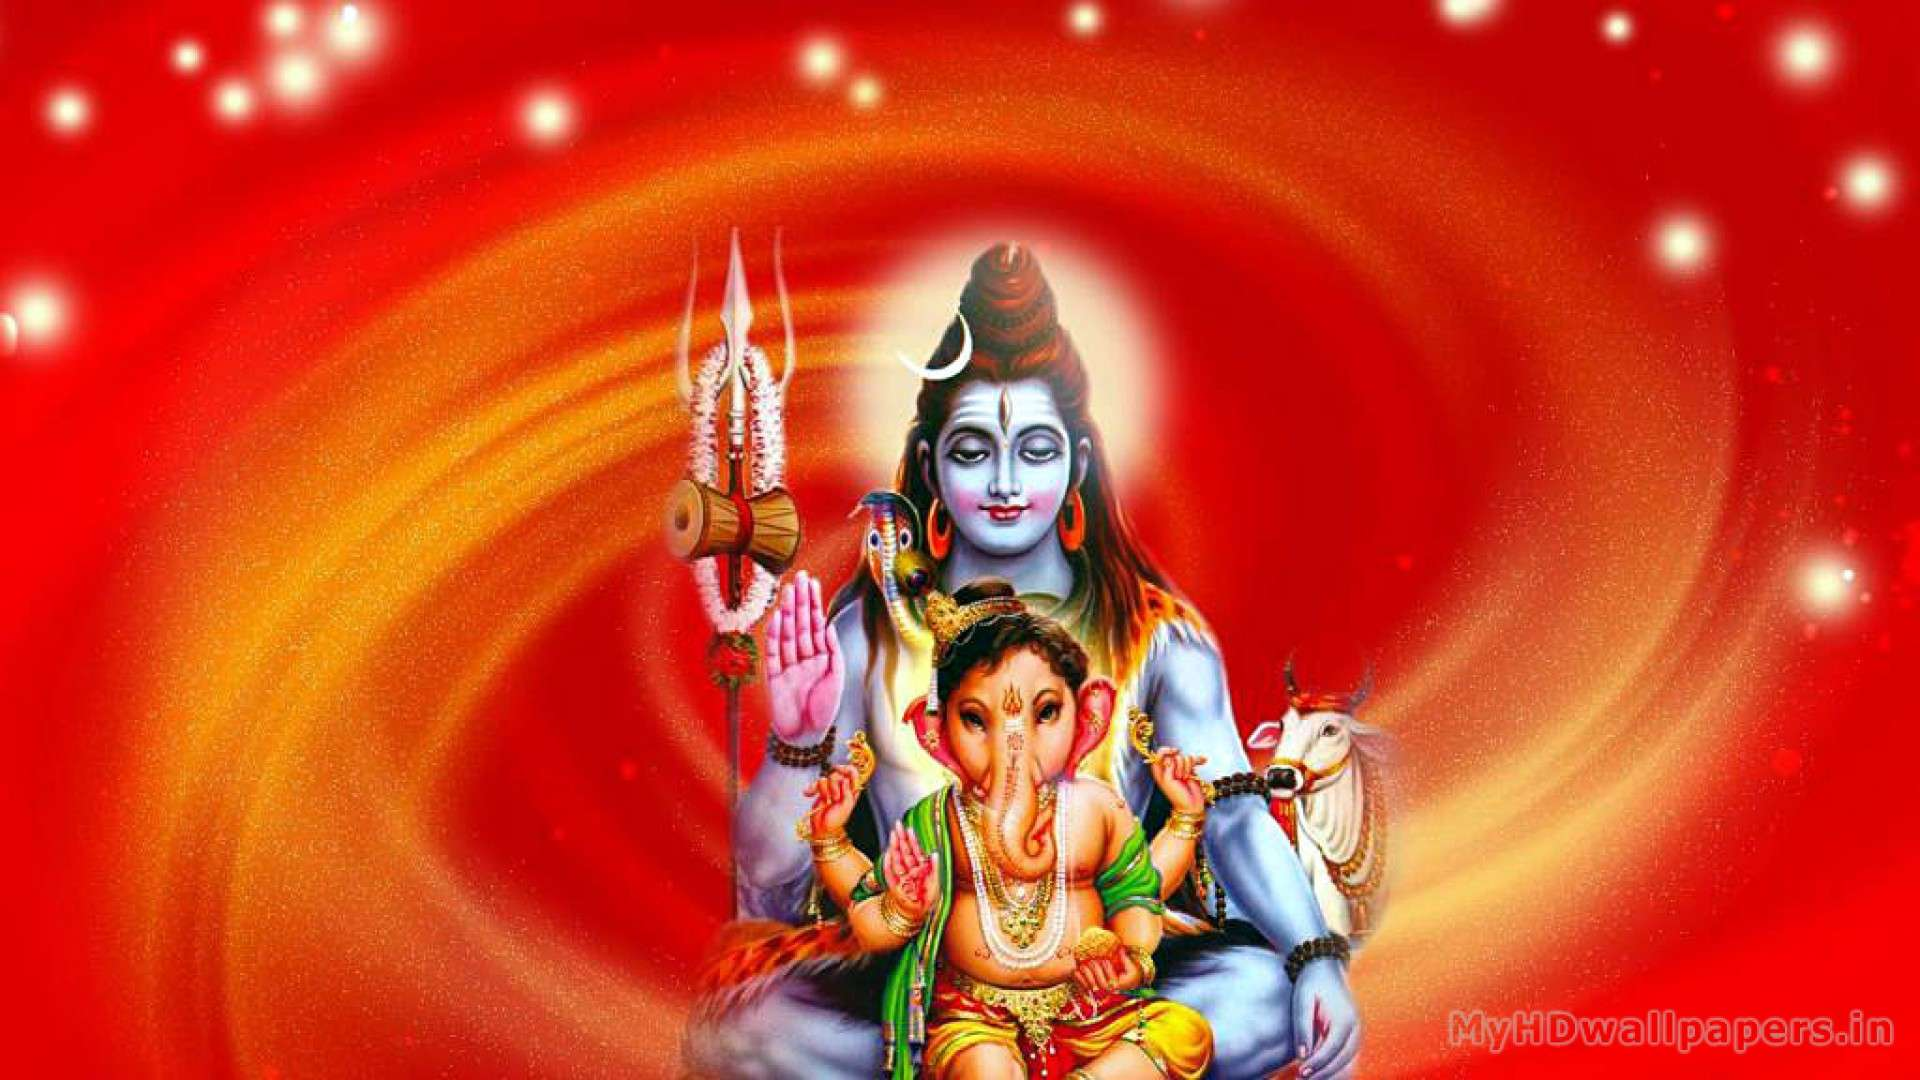 Lord Shiva Hd Wallpapers Wallpapersafari